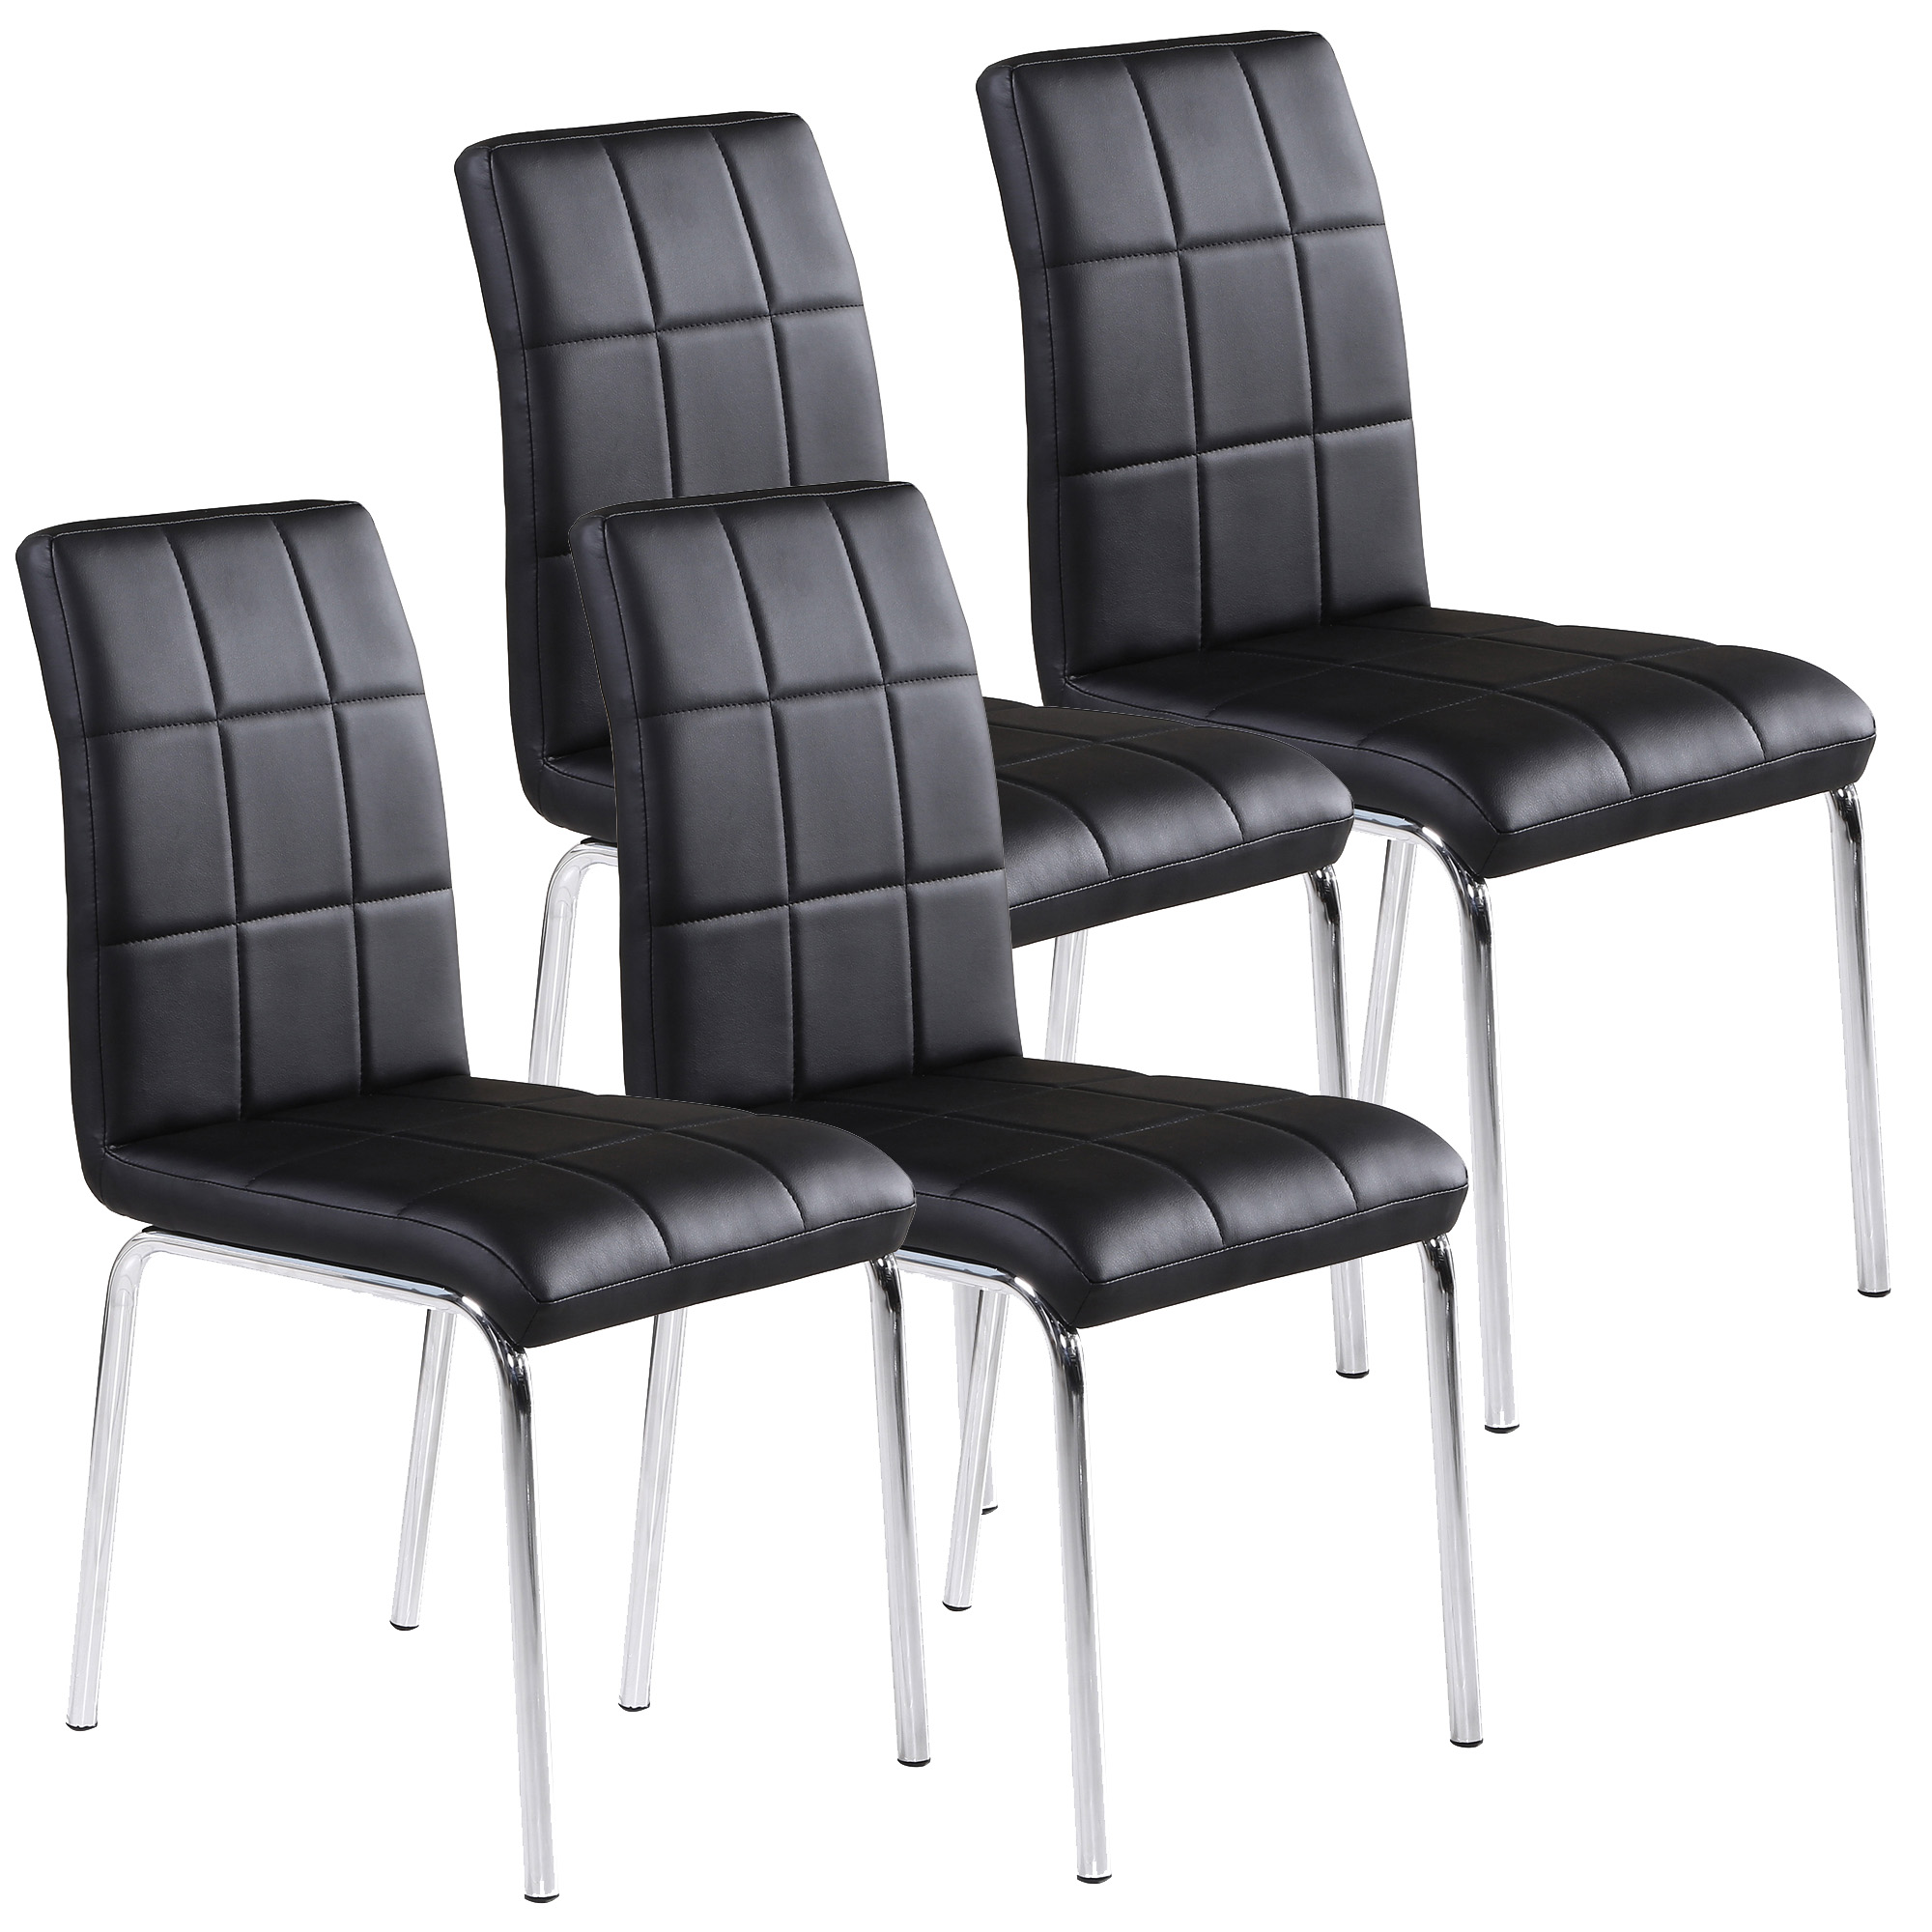 Faux Leather/Chrome Side Chair, White (set of 4)